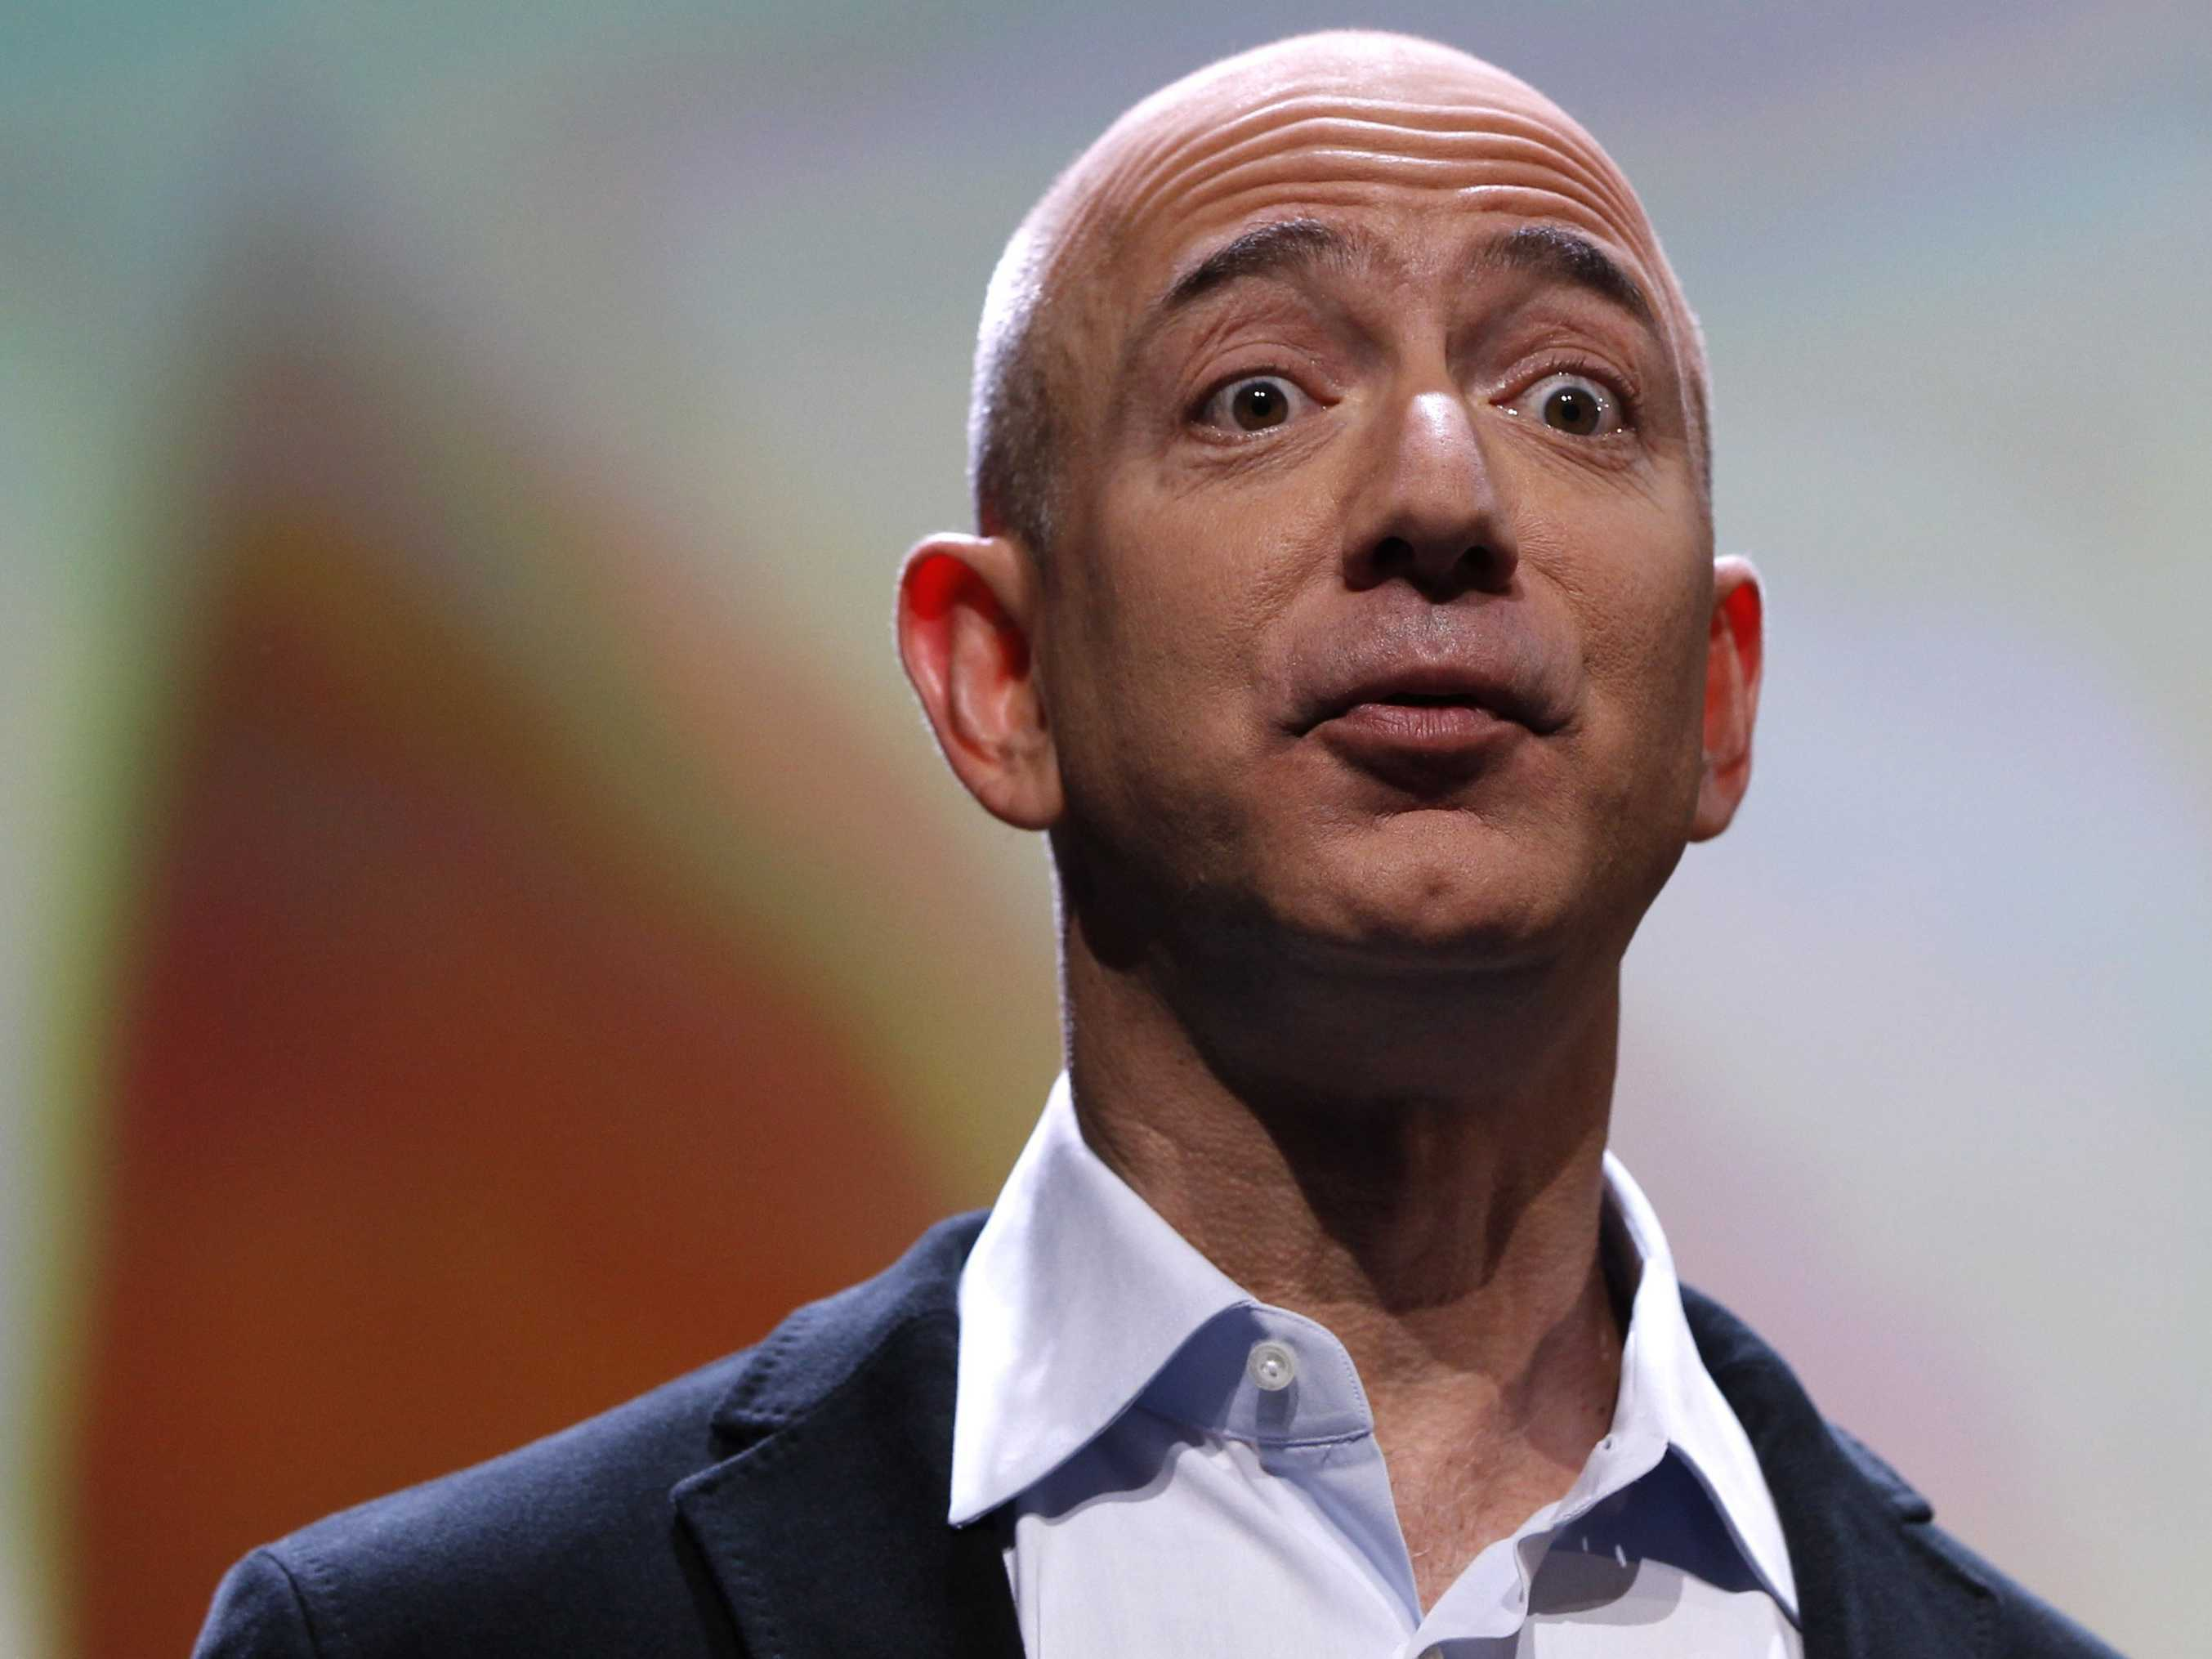 """jeff bezos amazoncom essay """"get big fast"""" in 1994 jeff bezos, a former wall street hedge fund executive, incorporated amazoncom, choosing the name primarily because it began with the first letter of the alphabet and because of its association with the vast south american river."""